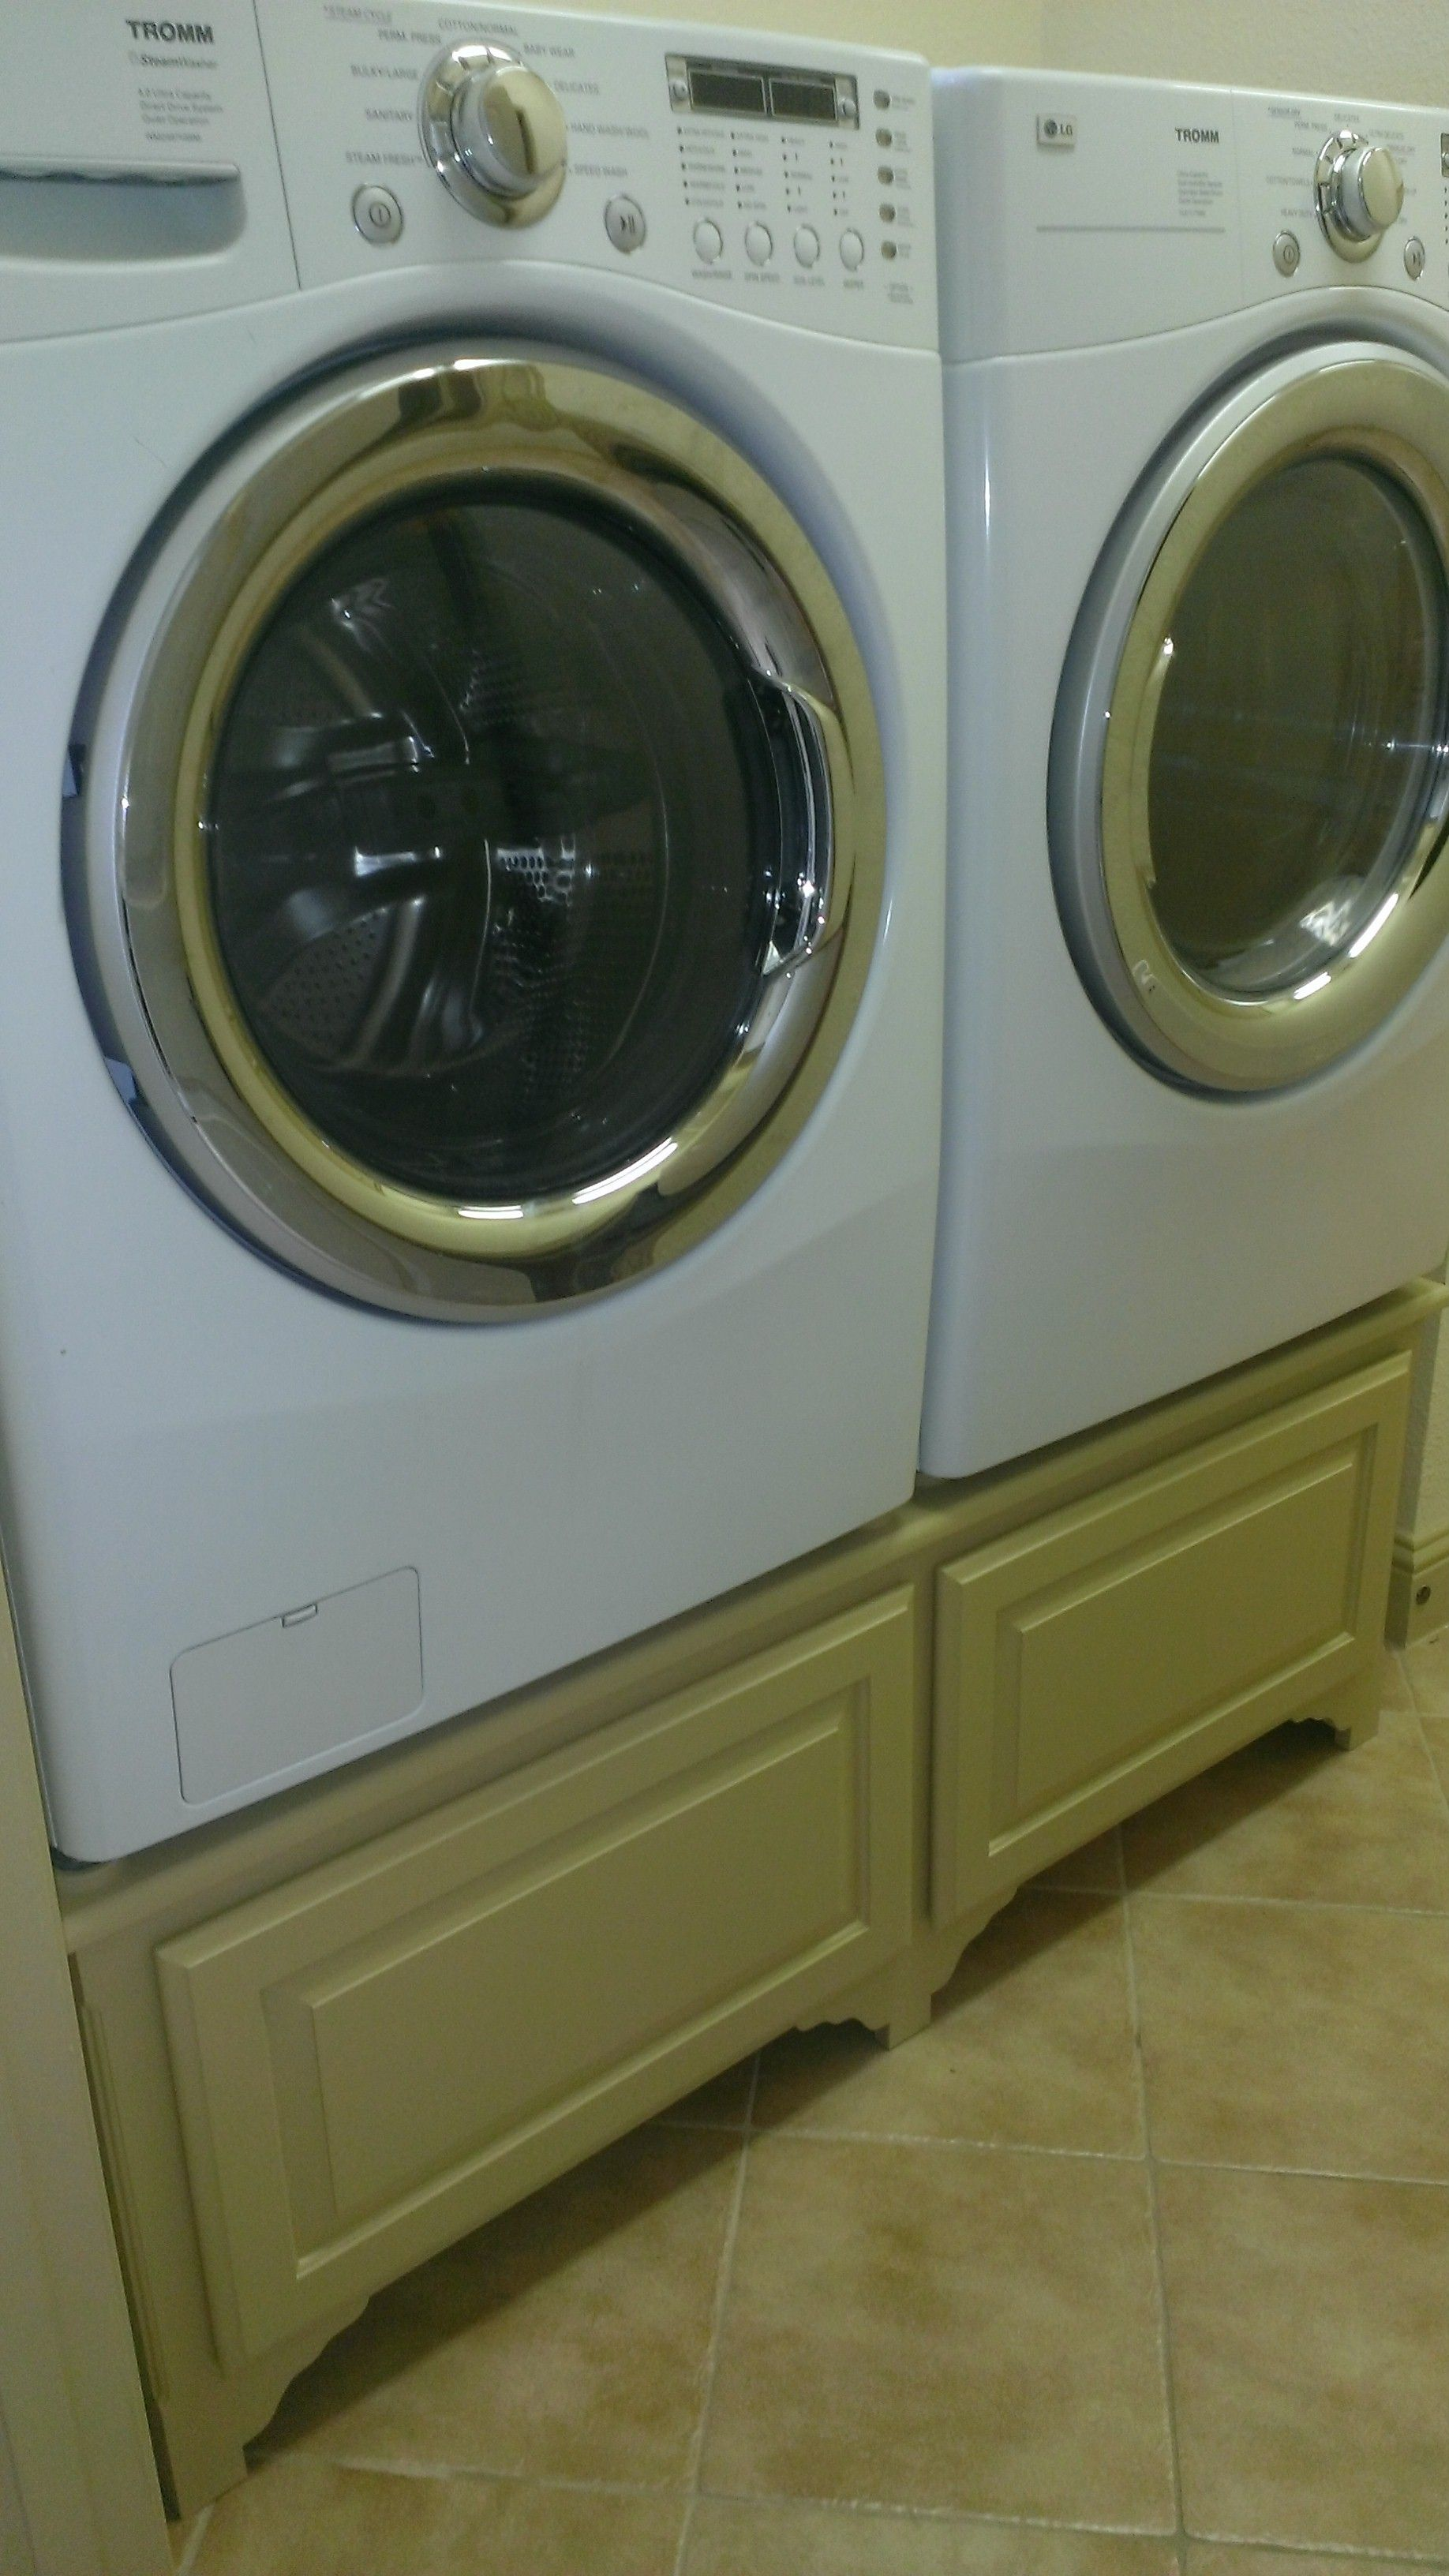 diy wooden washer dryer viewer wood the kurts pedestals pedestal and projects whisperer